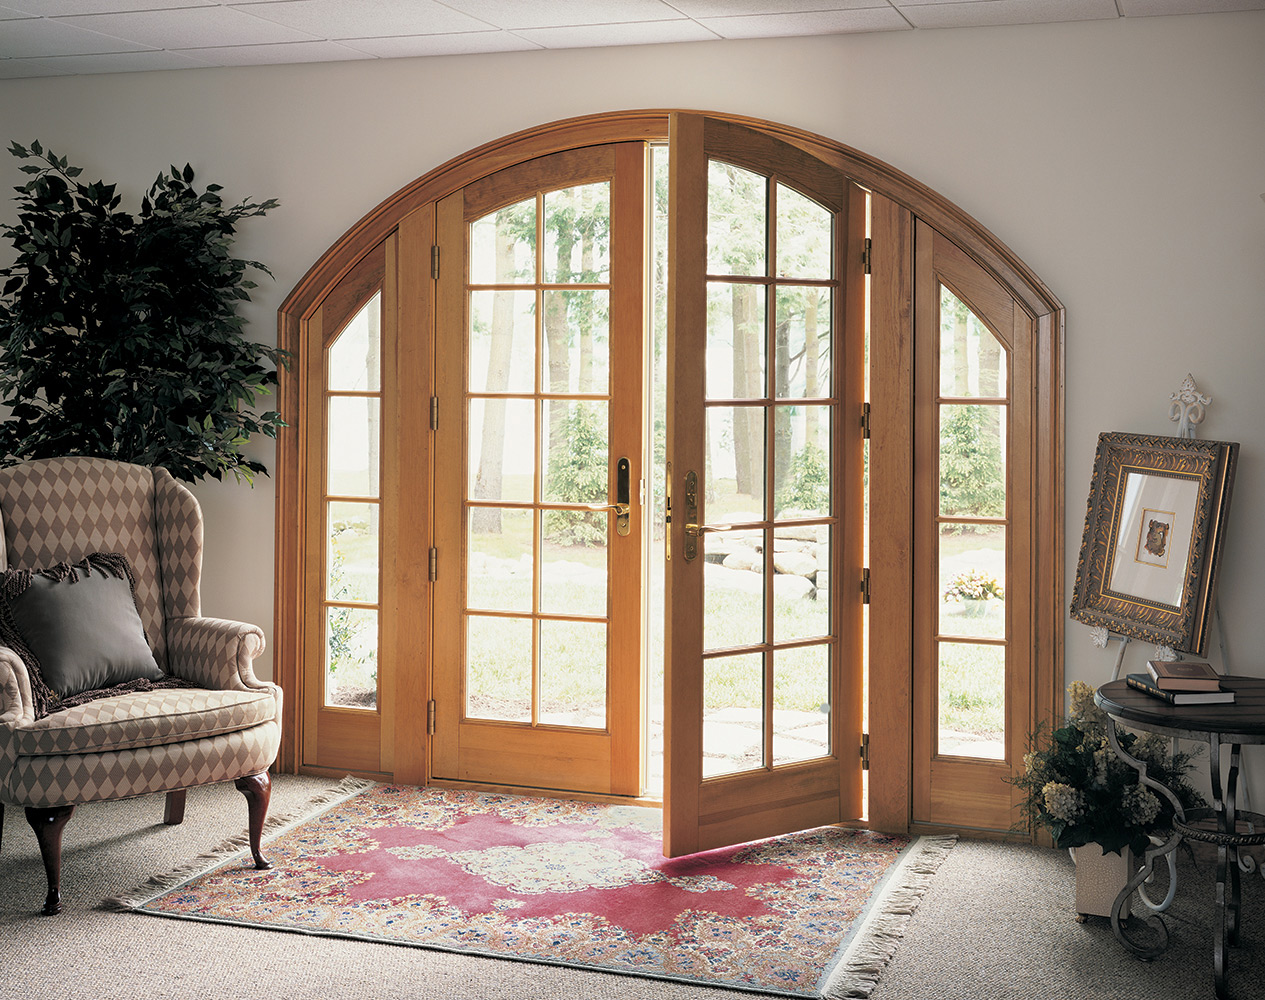 Replacement patio doors wisconsin hometowne windows for Patio entrance doors